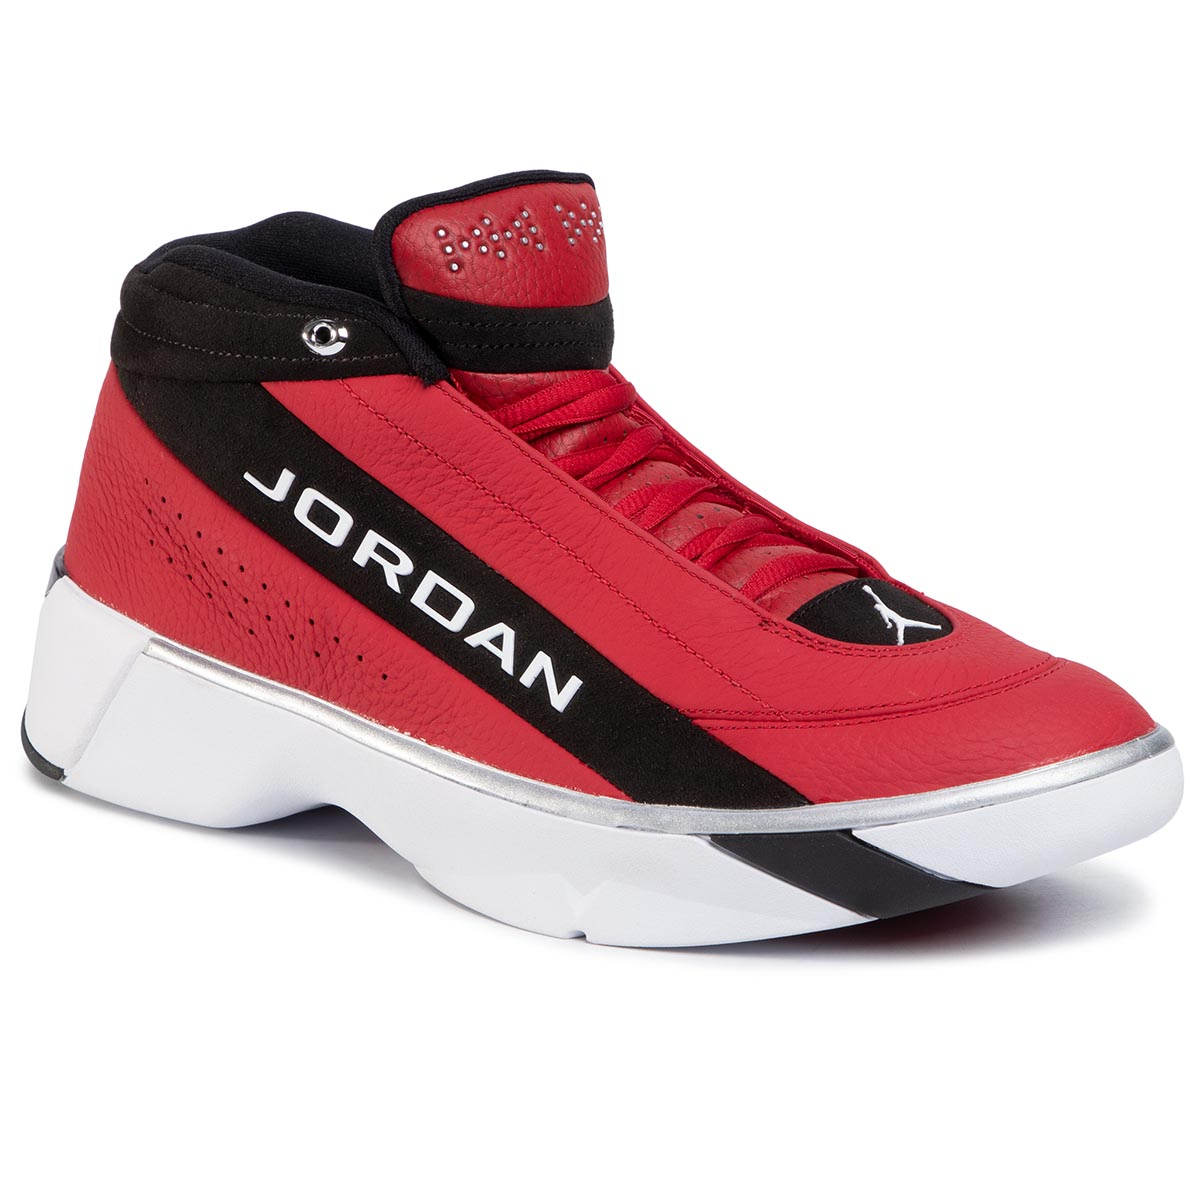 Pantofi Nike - Jordan Team Showcase Cd4150 600 Gym Red/White/Black imagine